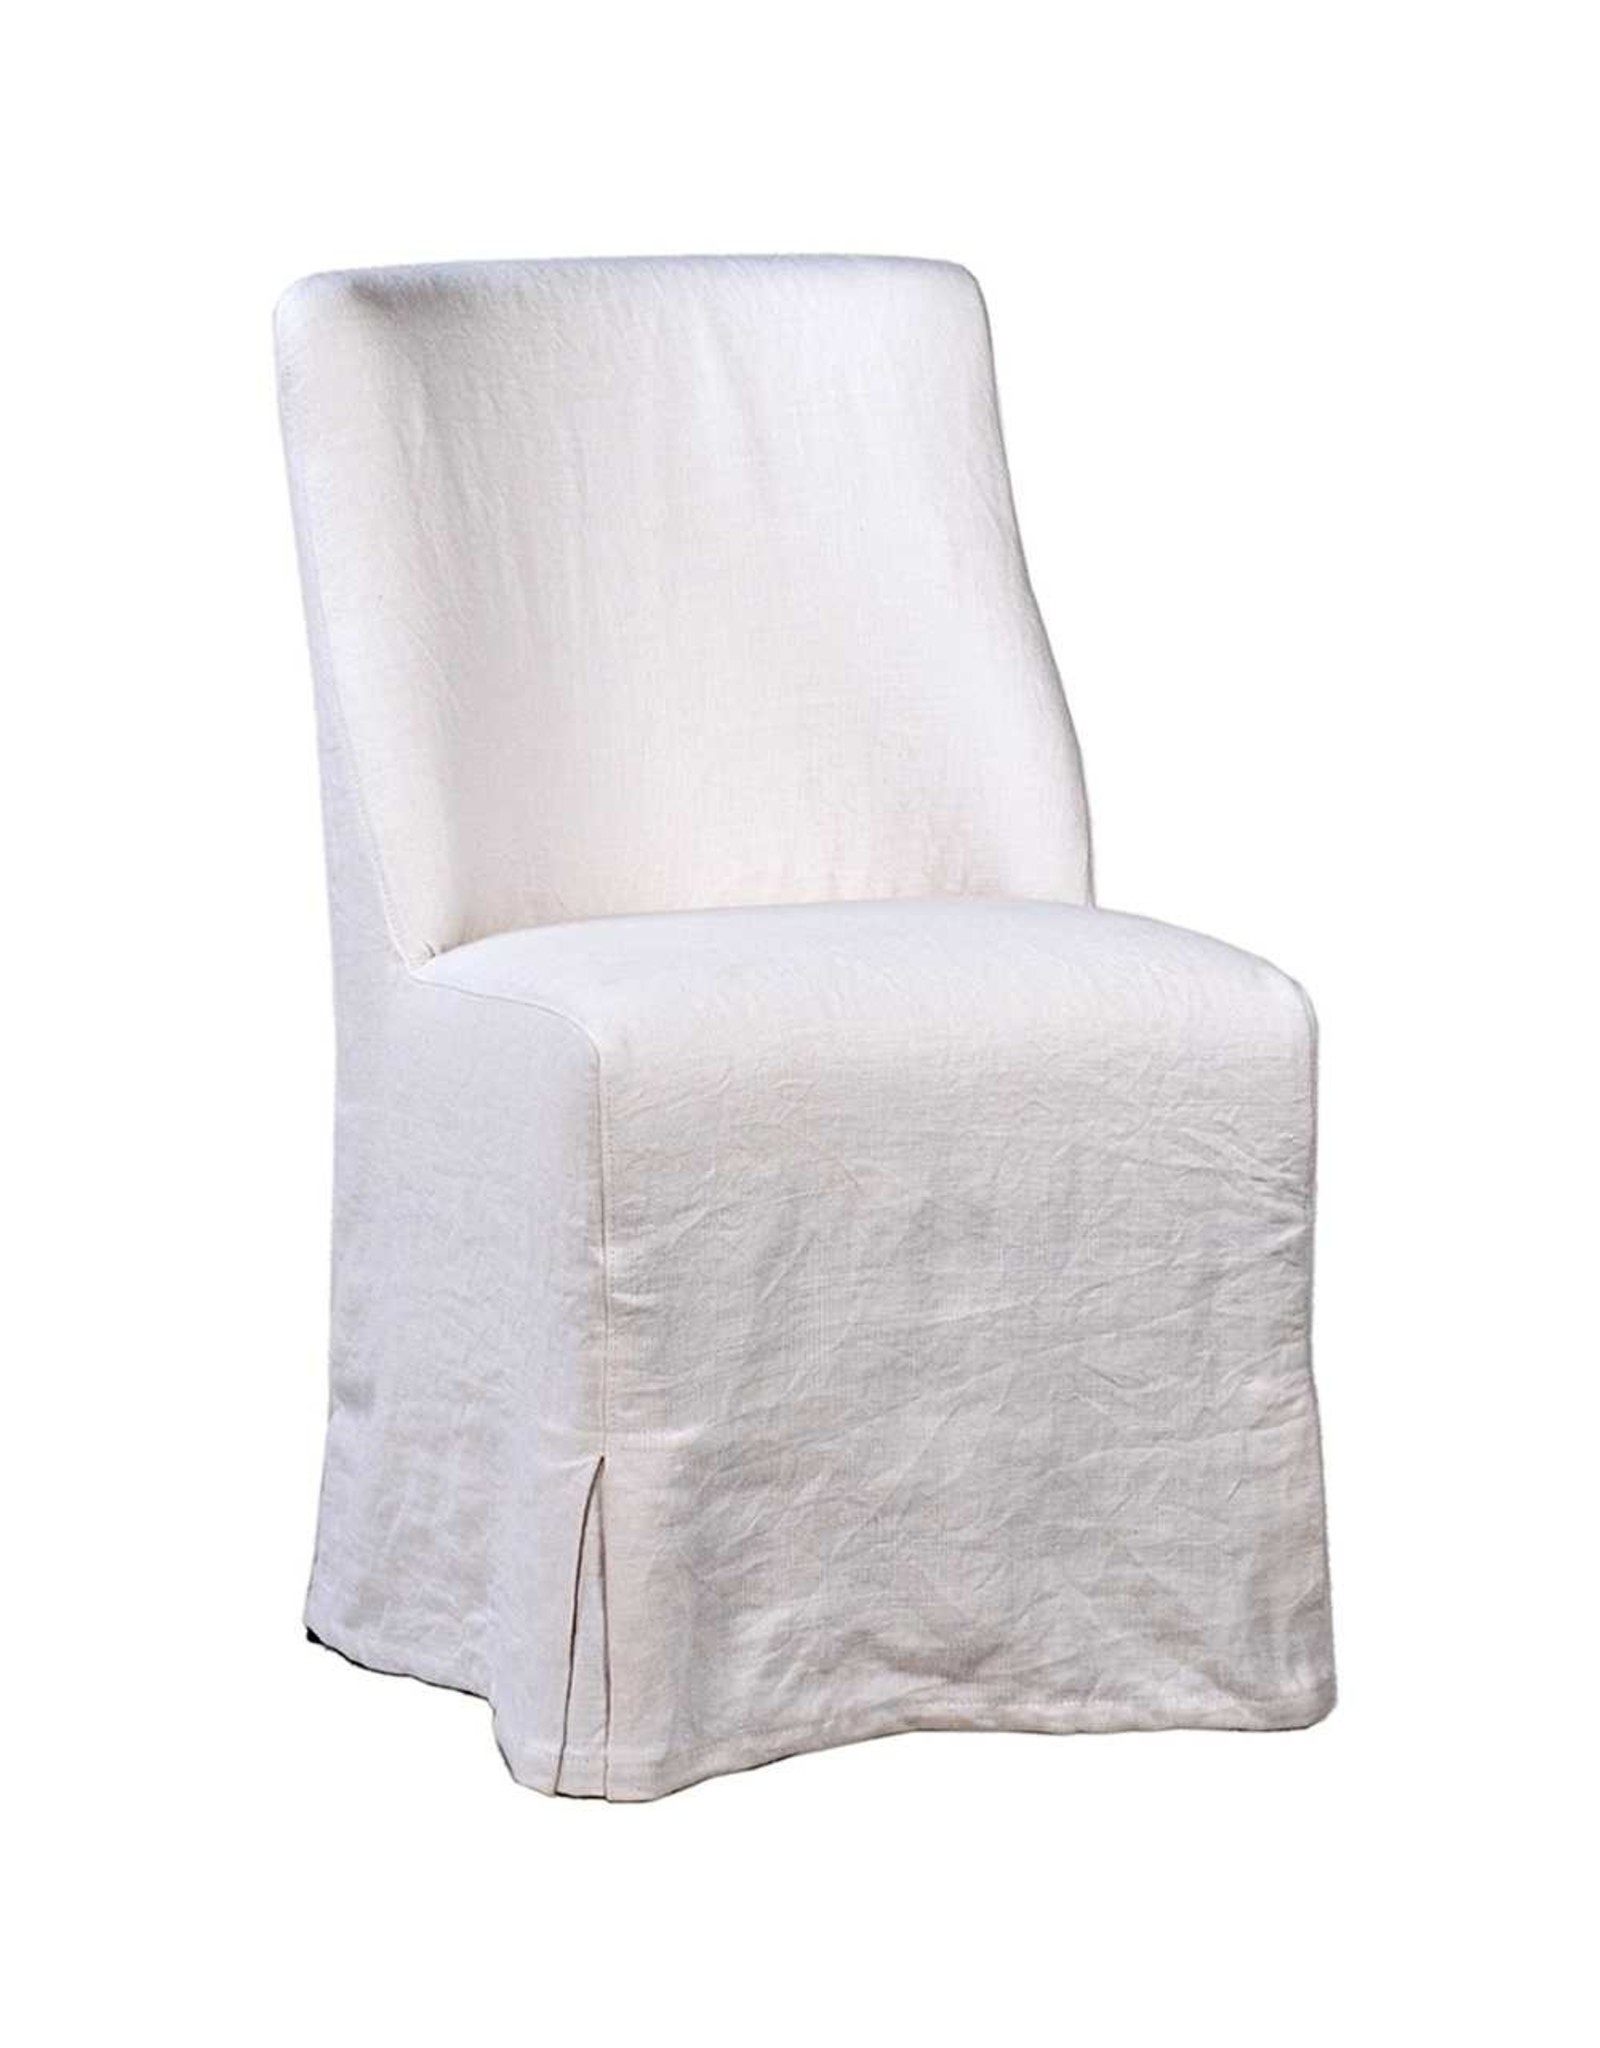 White Linen Dining Chair